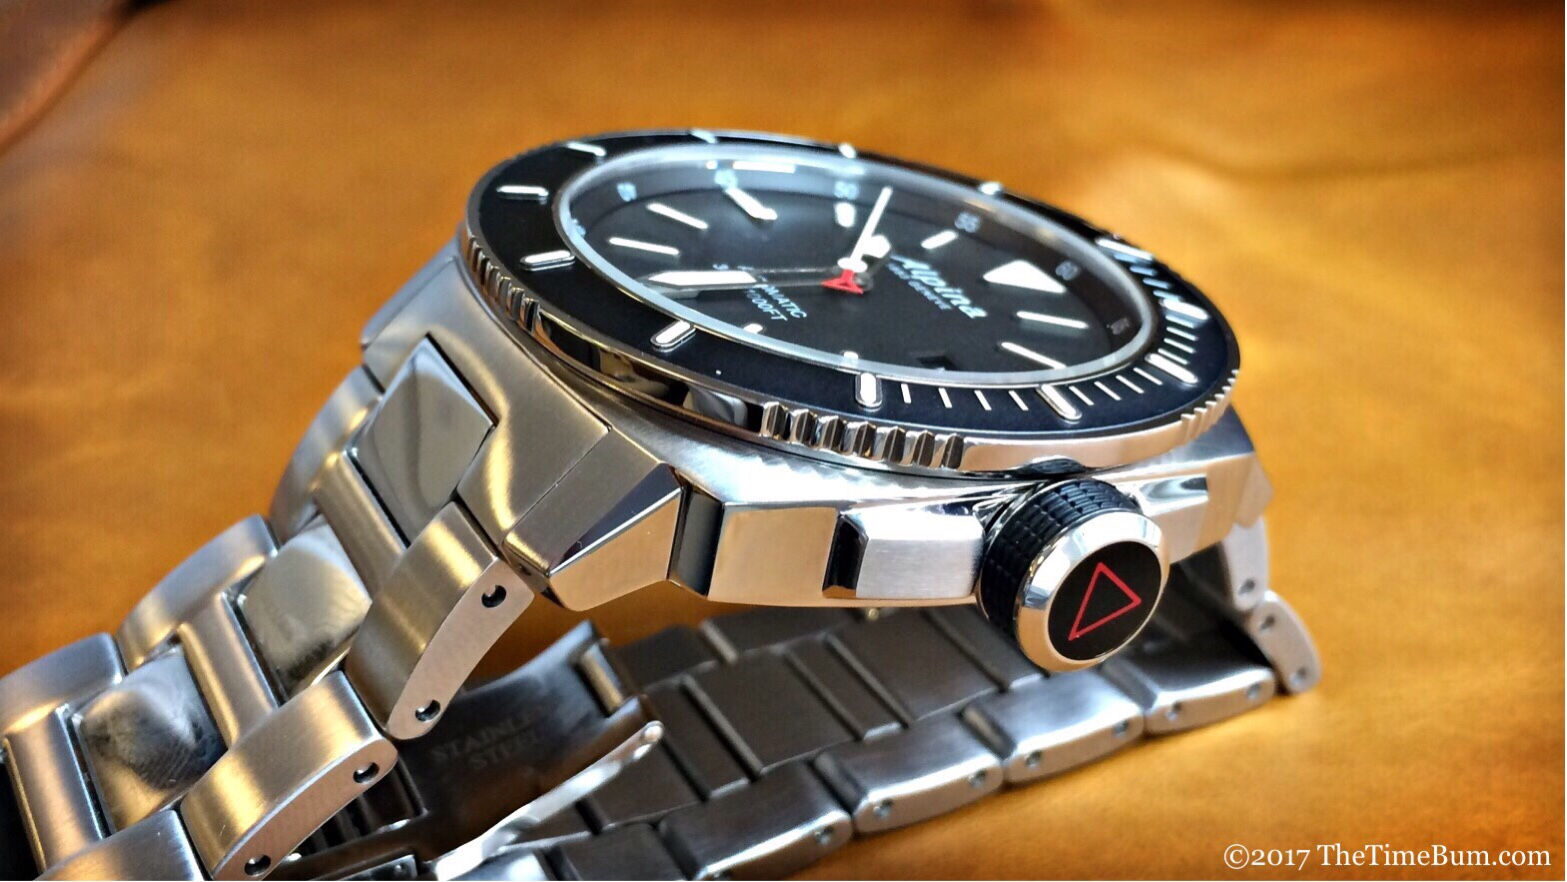 Alpina Seastrong Diver 300 Automatic crown